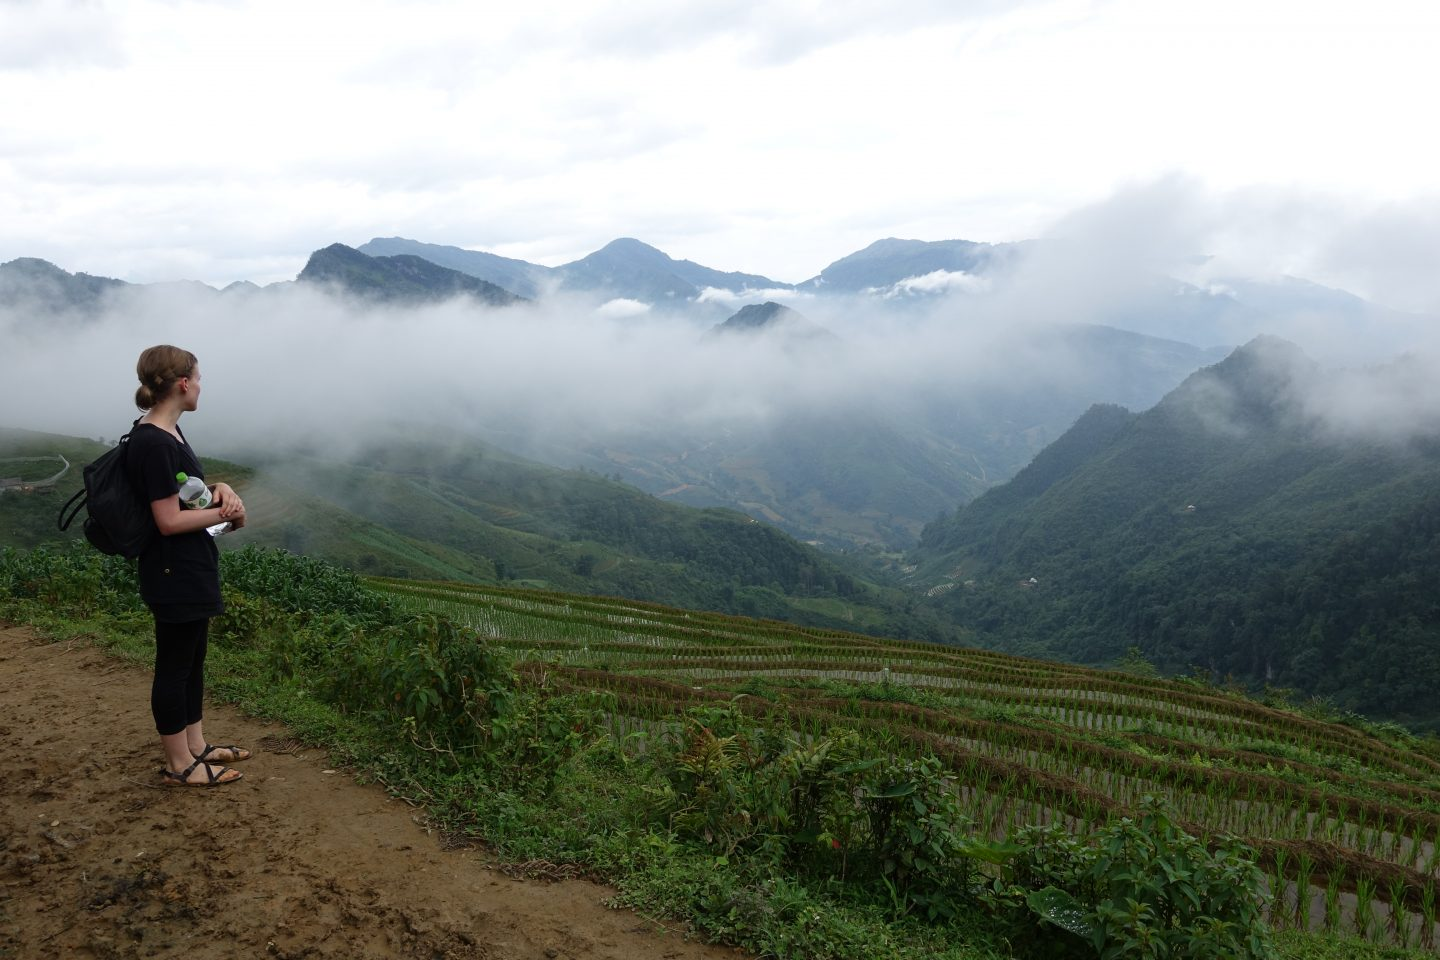 A Beginner's Guide to Trekking in Sapa